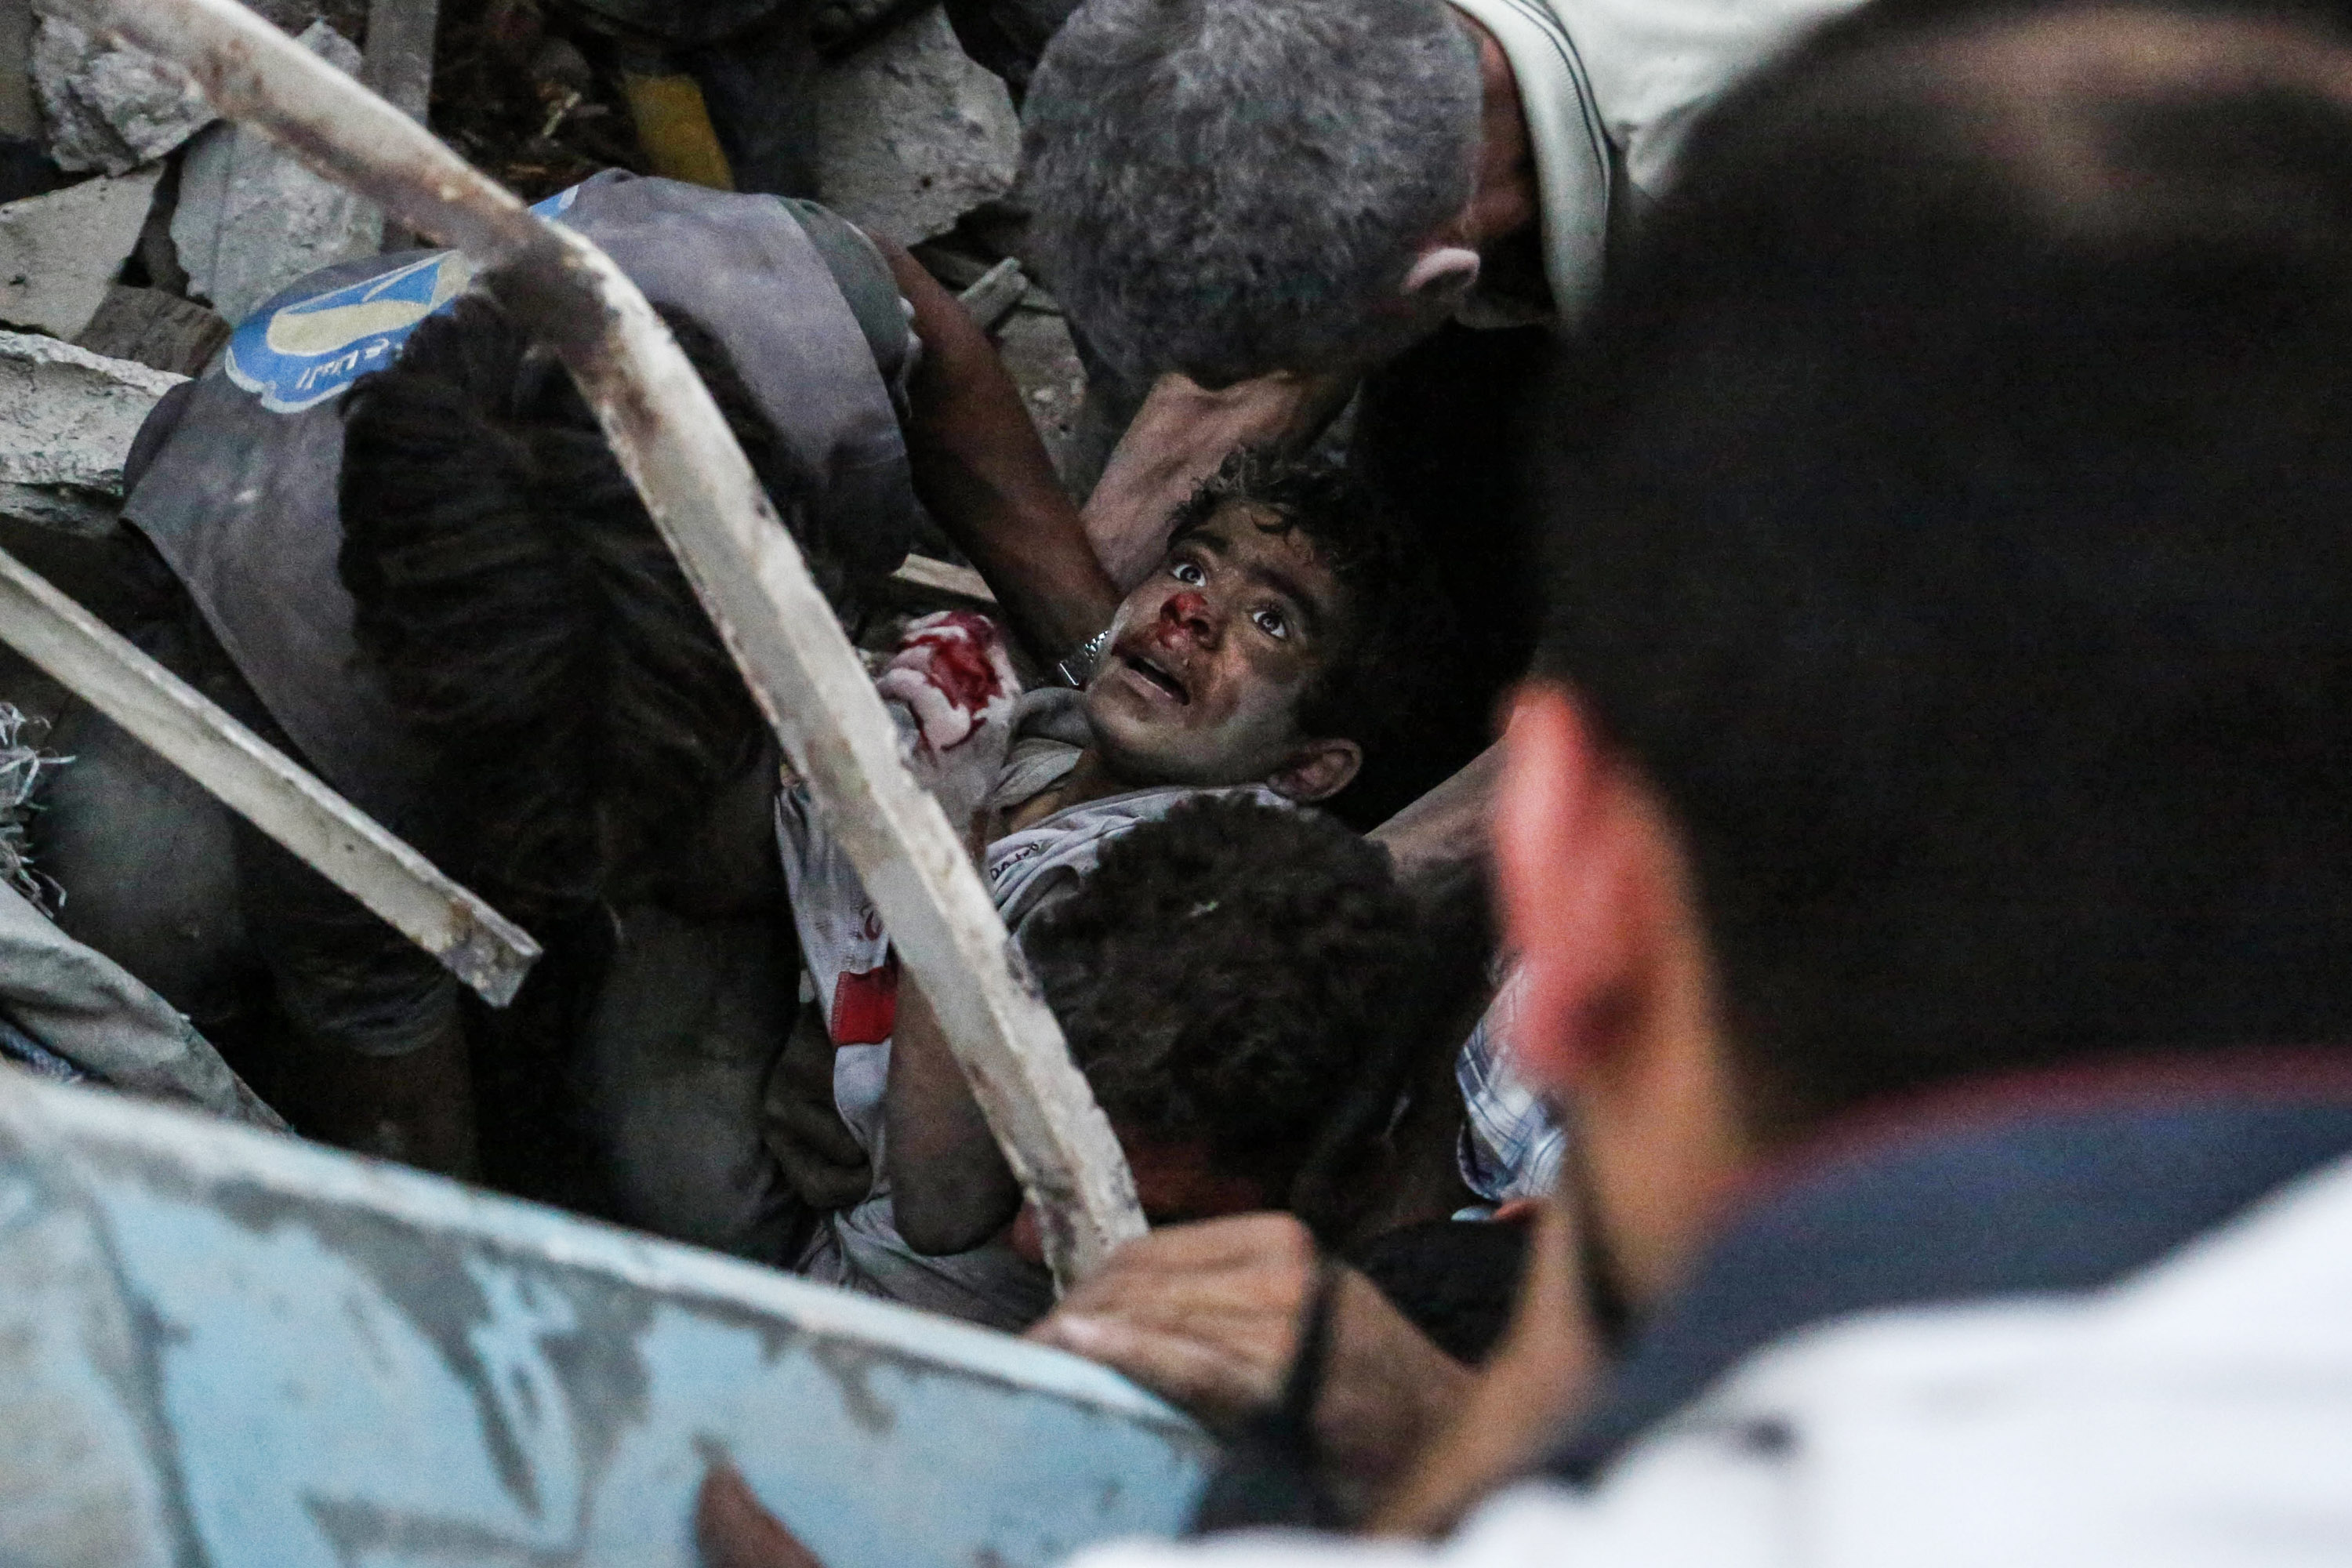 Syrians evacuate an injured boy from rubble following a reported air strike on a rebel-held town of Douma, northeast of the capital Damascus on June 16, 2015. Nearly every day, Syria's air force drops barrel bombs -- containers packed with crude explosives and shrapnel -- on areas wrested from government control by rebels.  / AFP PHOTO / SAMEER AL-DOUMY